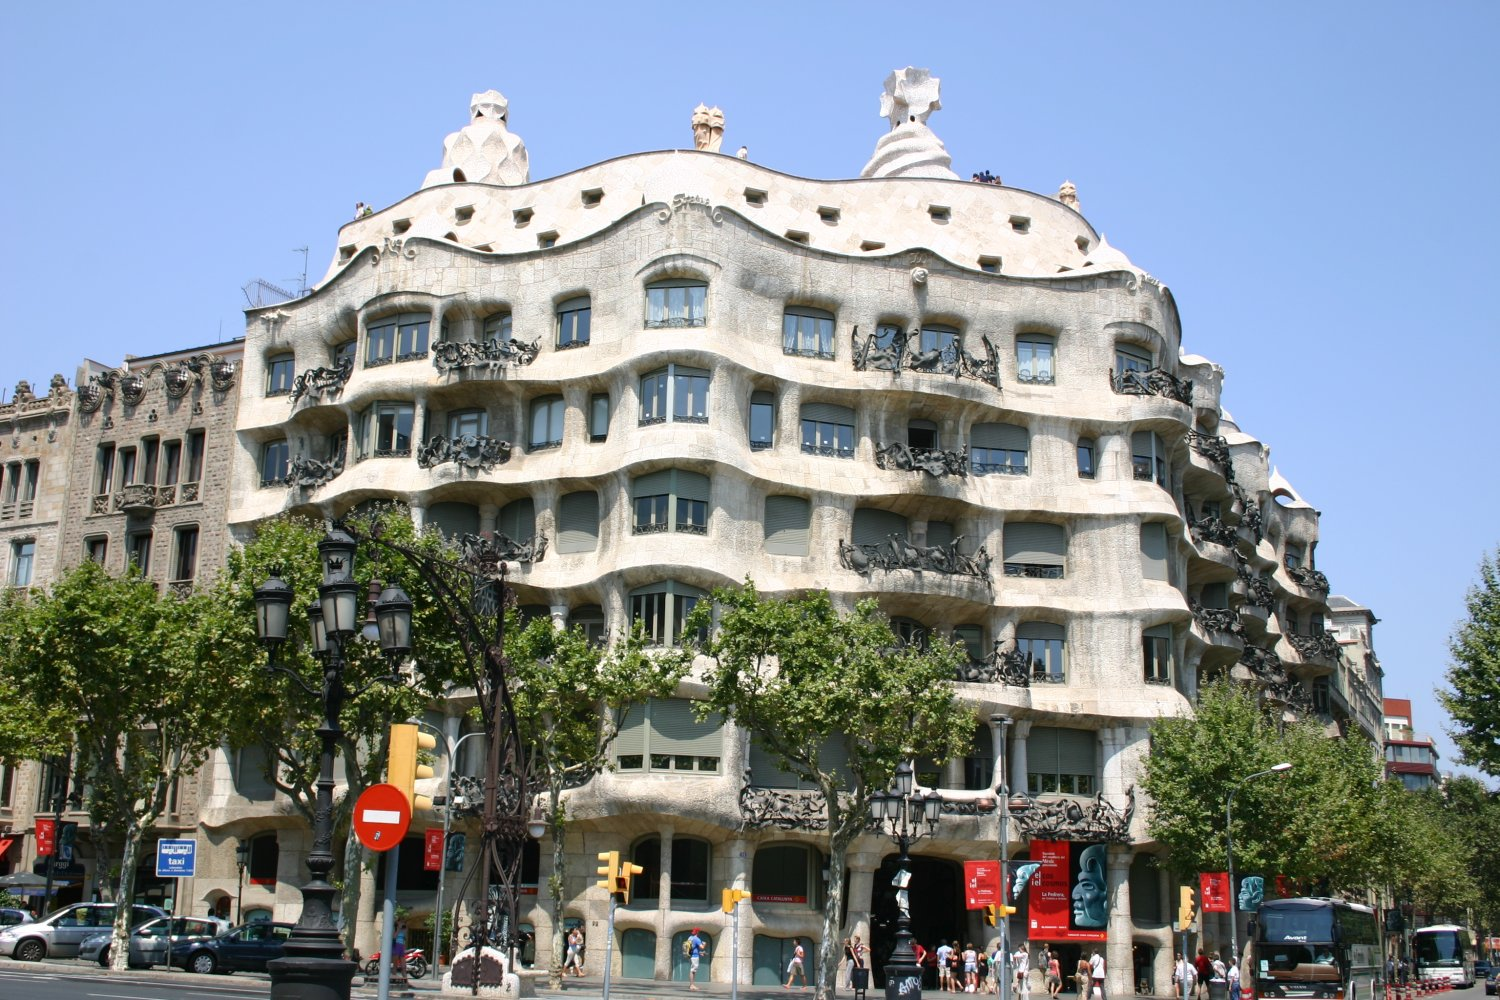 Casa mila cave in the elite area of barcelona - Casas de barcelona ...